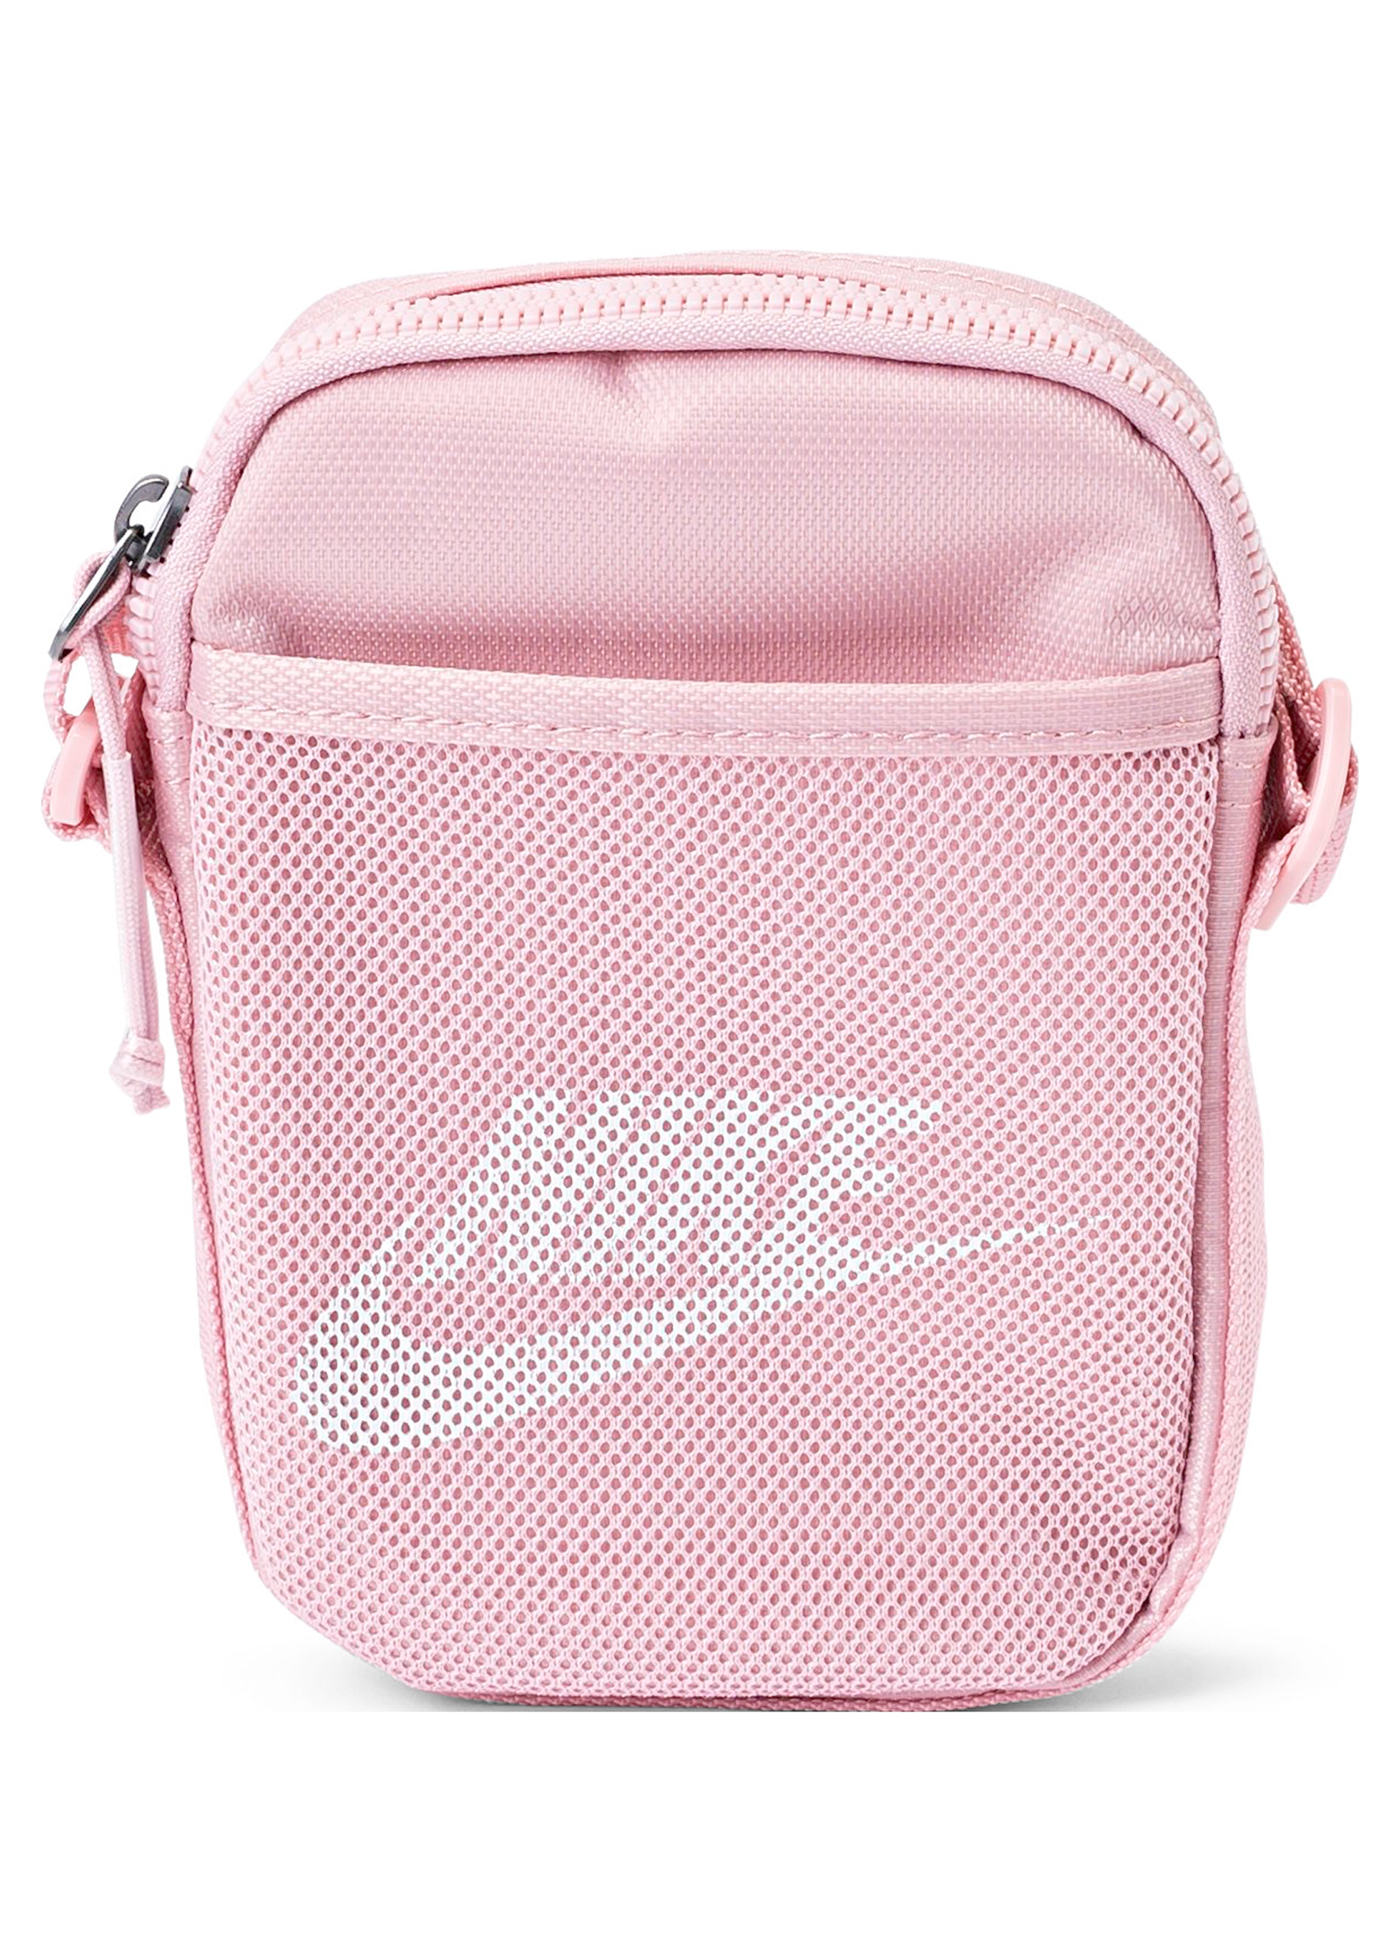 Heritage Crossbody Small image number 0